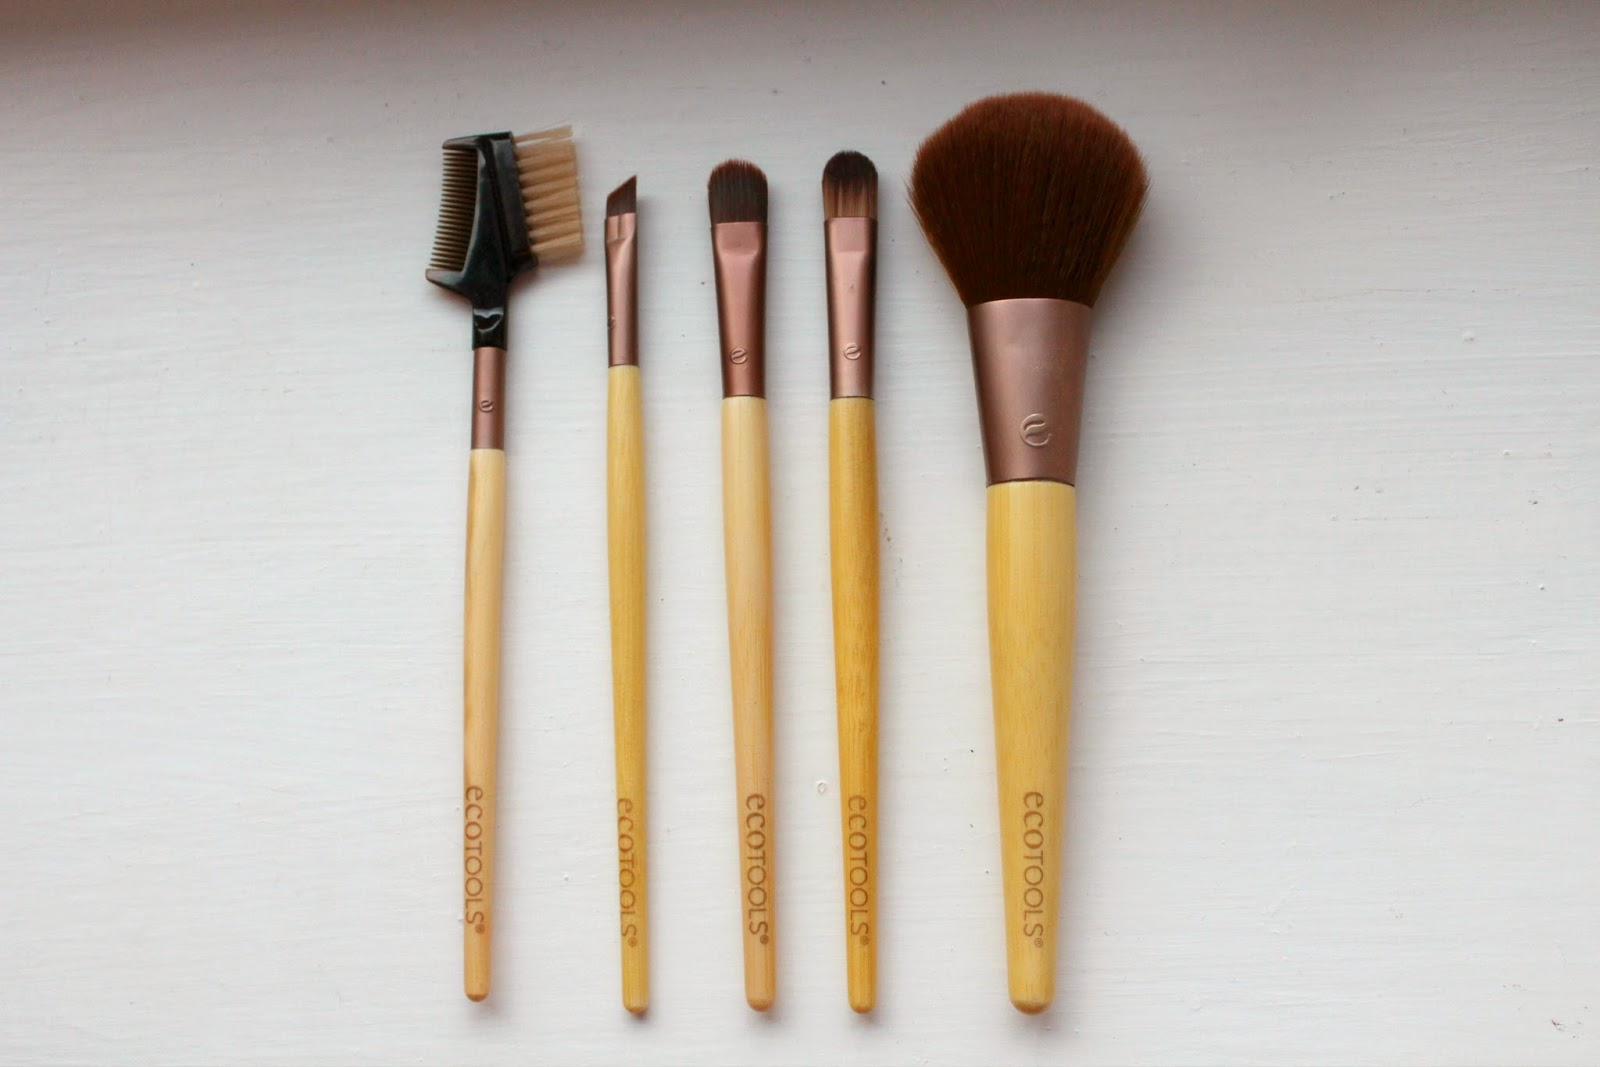 A picture of the 6 Eco Tool Bamboo Brush Set